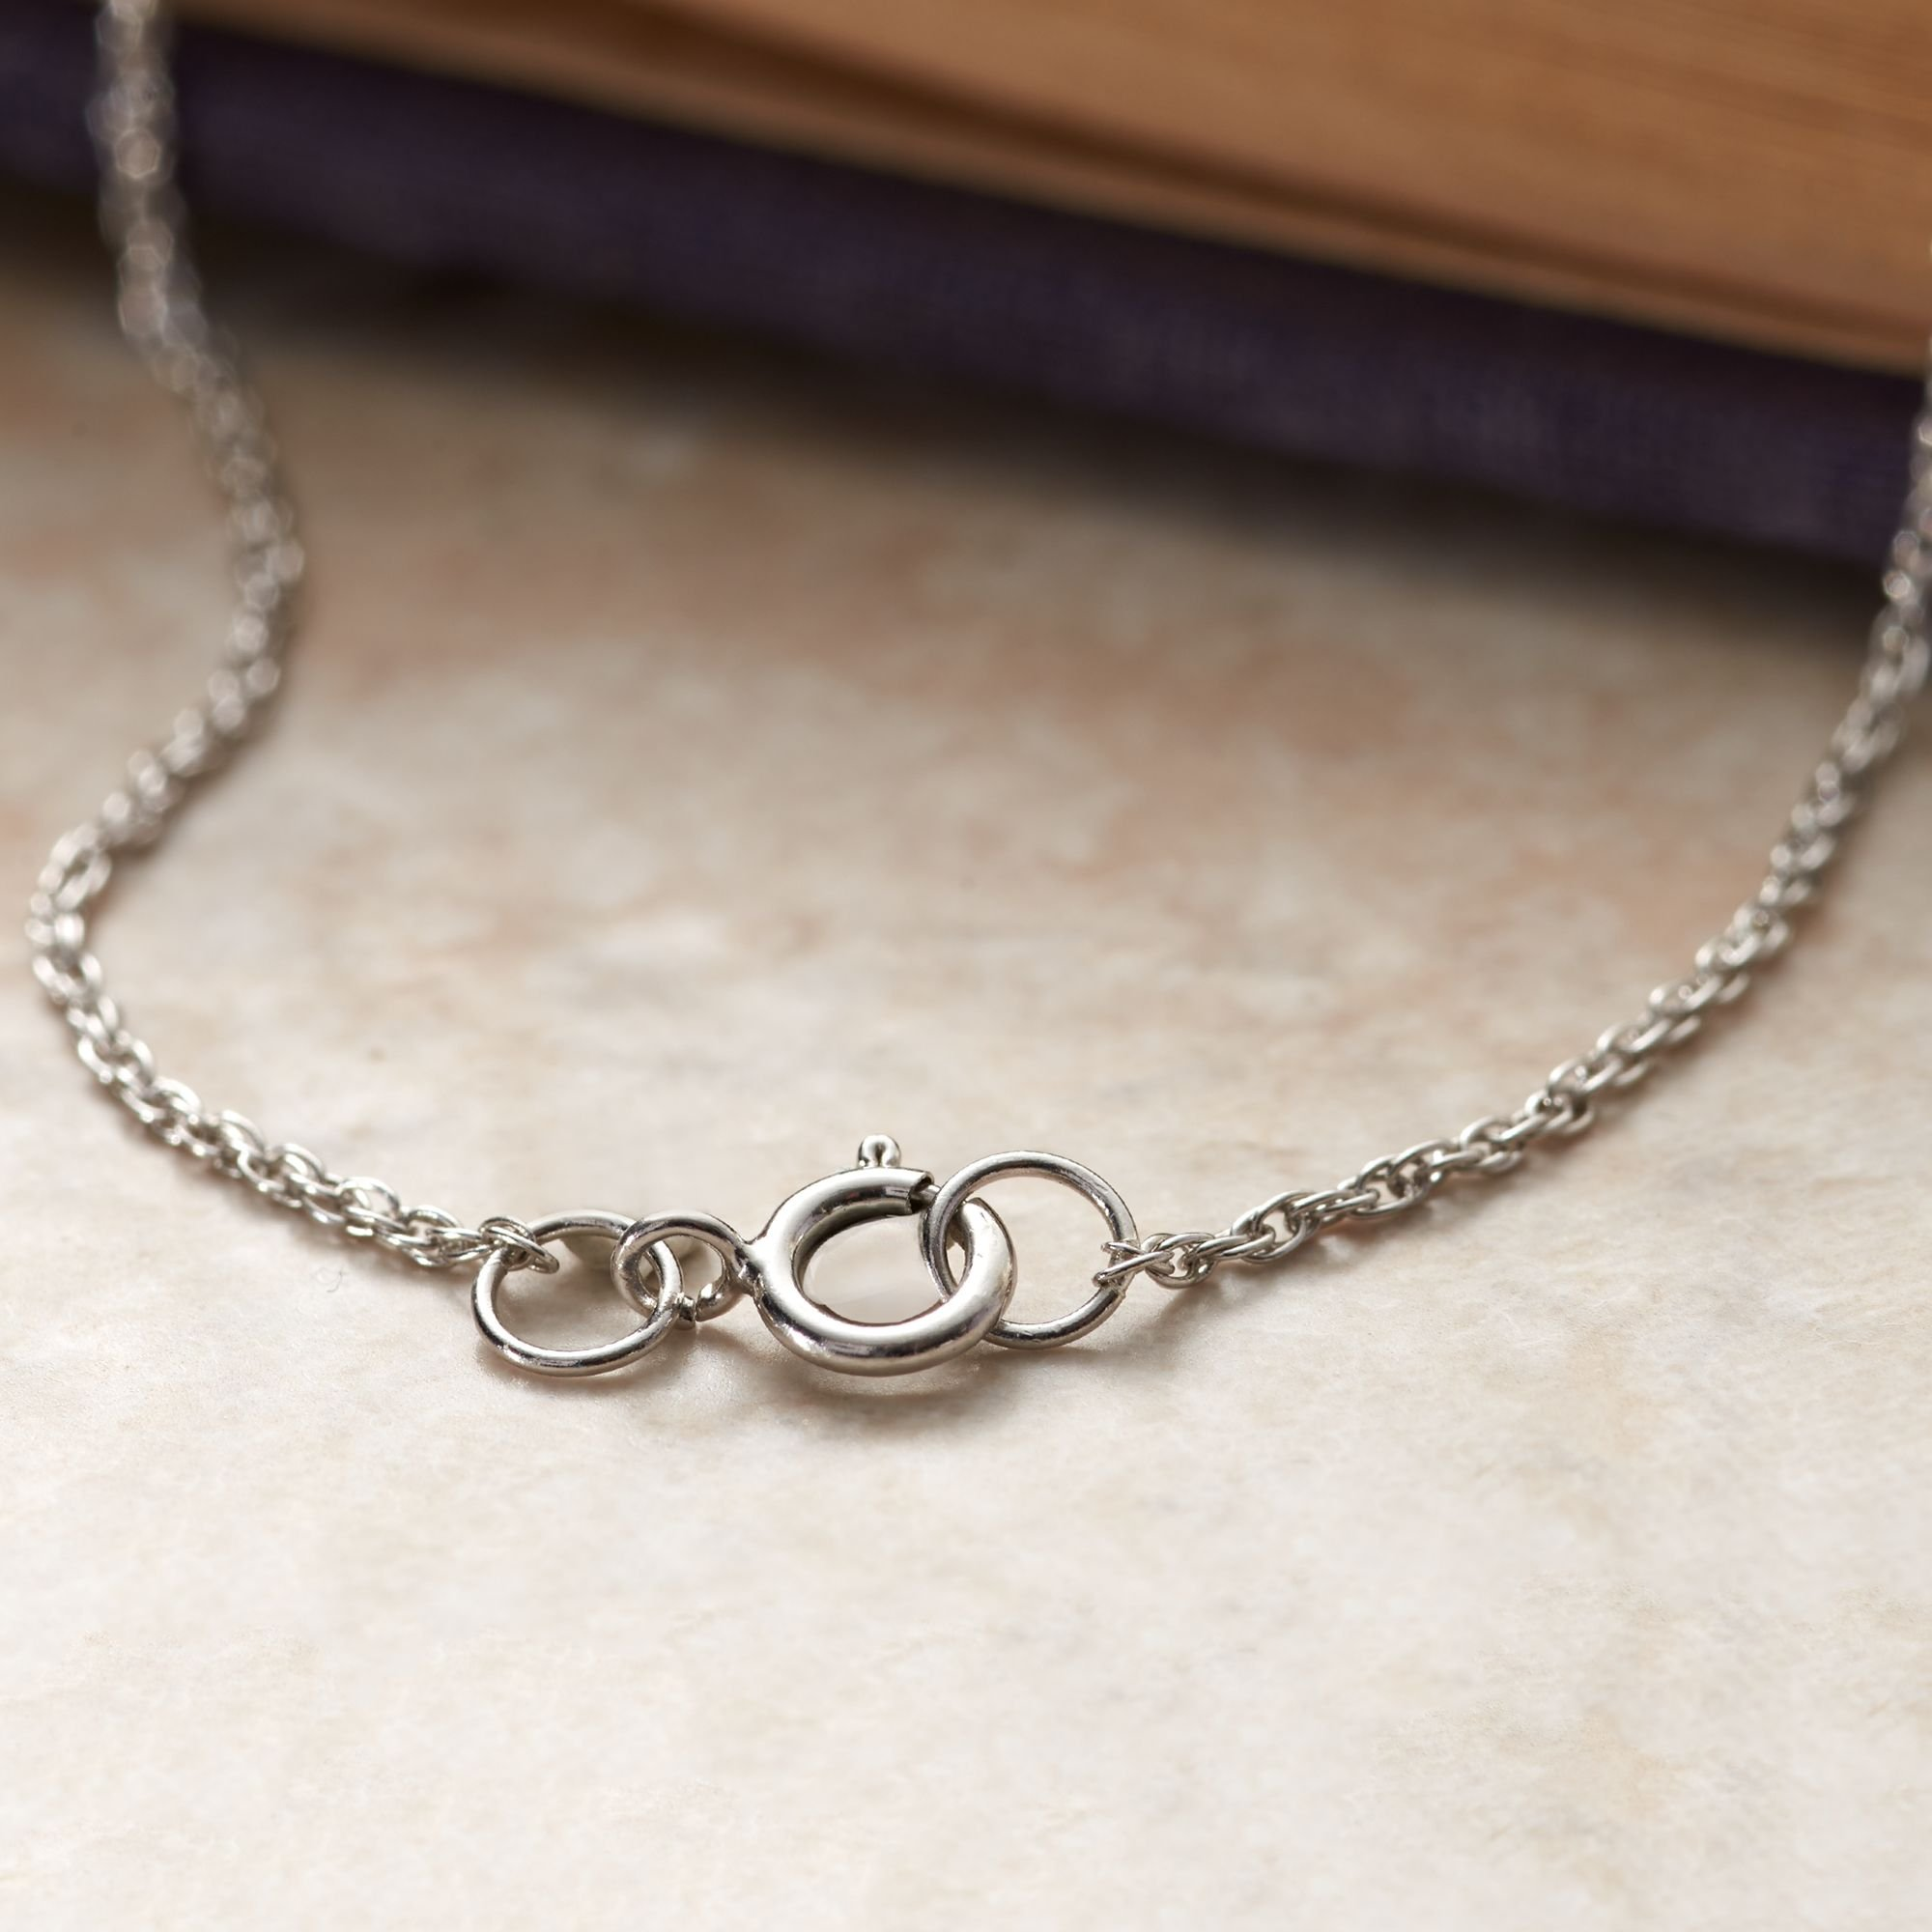 Ross-Simons 6-10mm Sterling Silver Bead Necklace With .20 ct. t.w. Diamonds by Ross-Simons (Image #7)